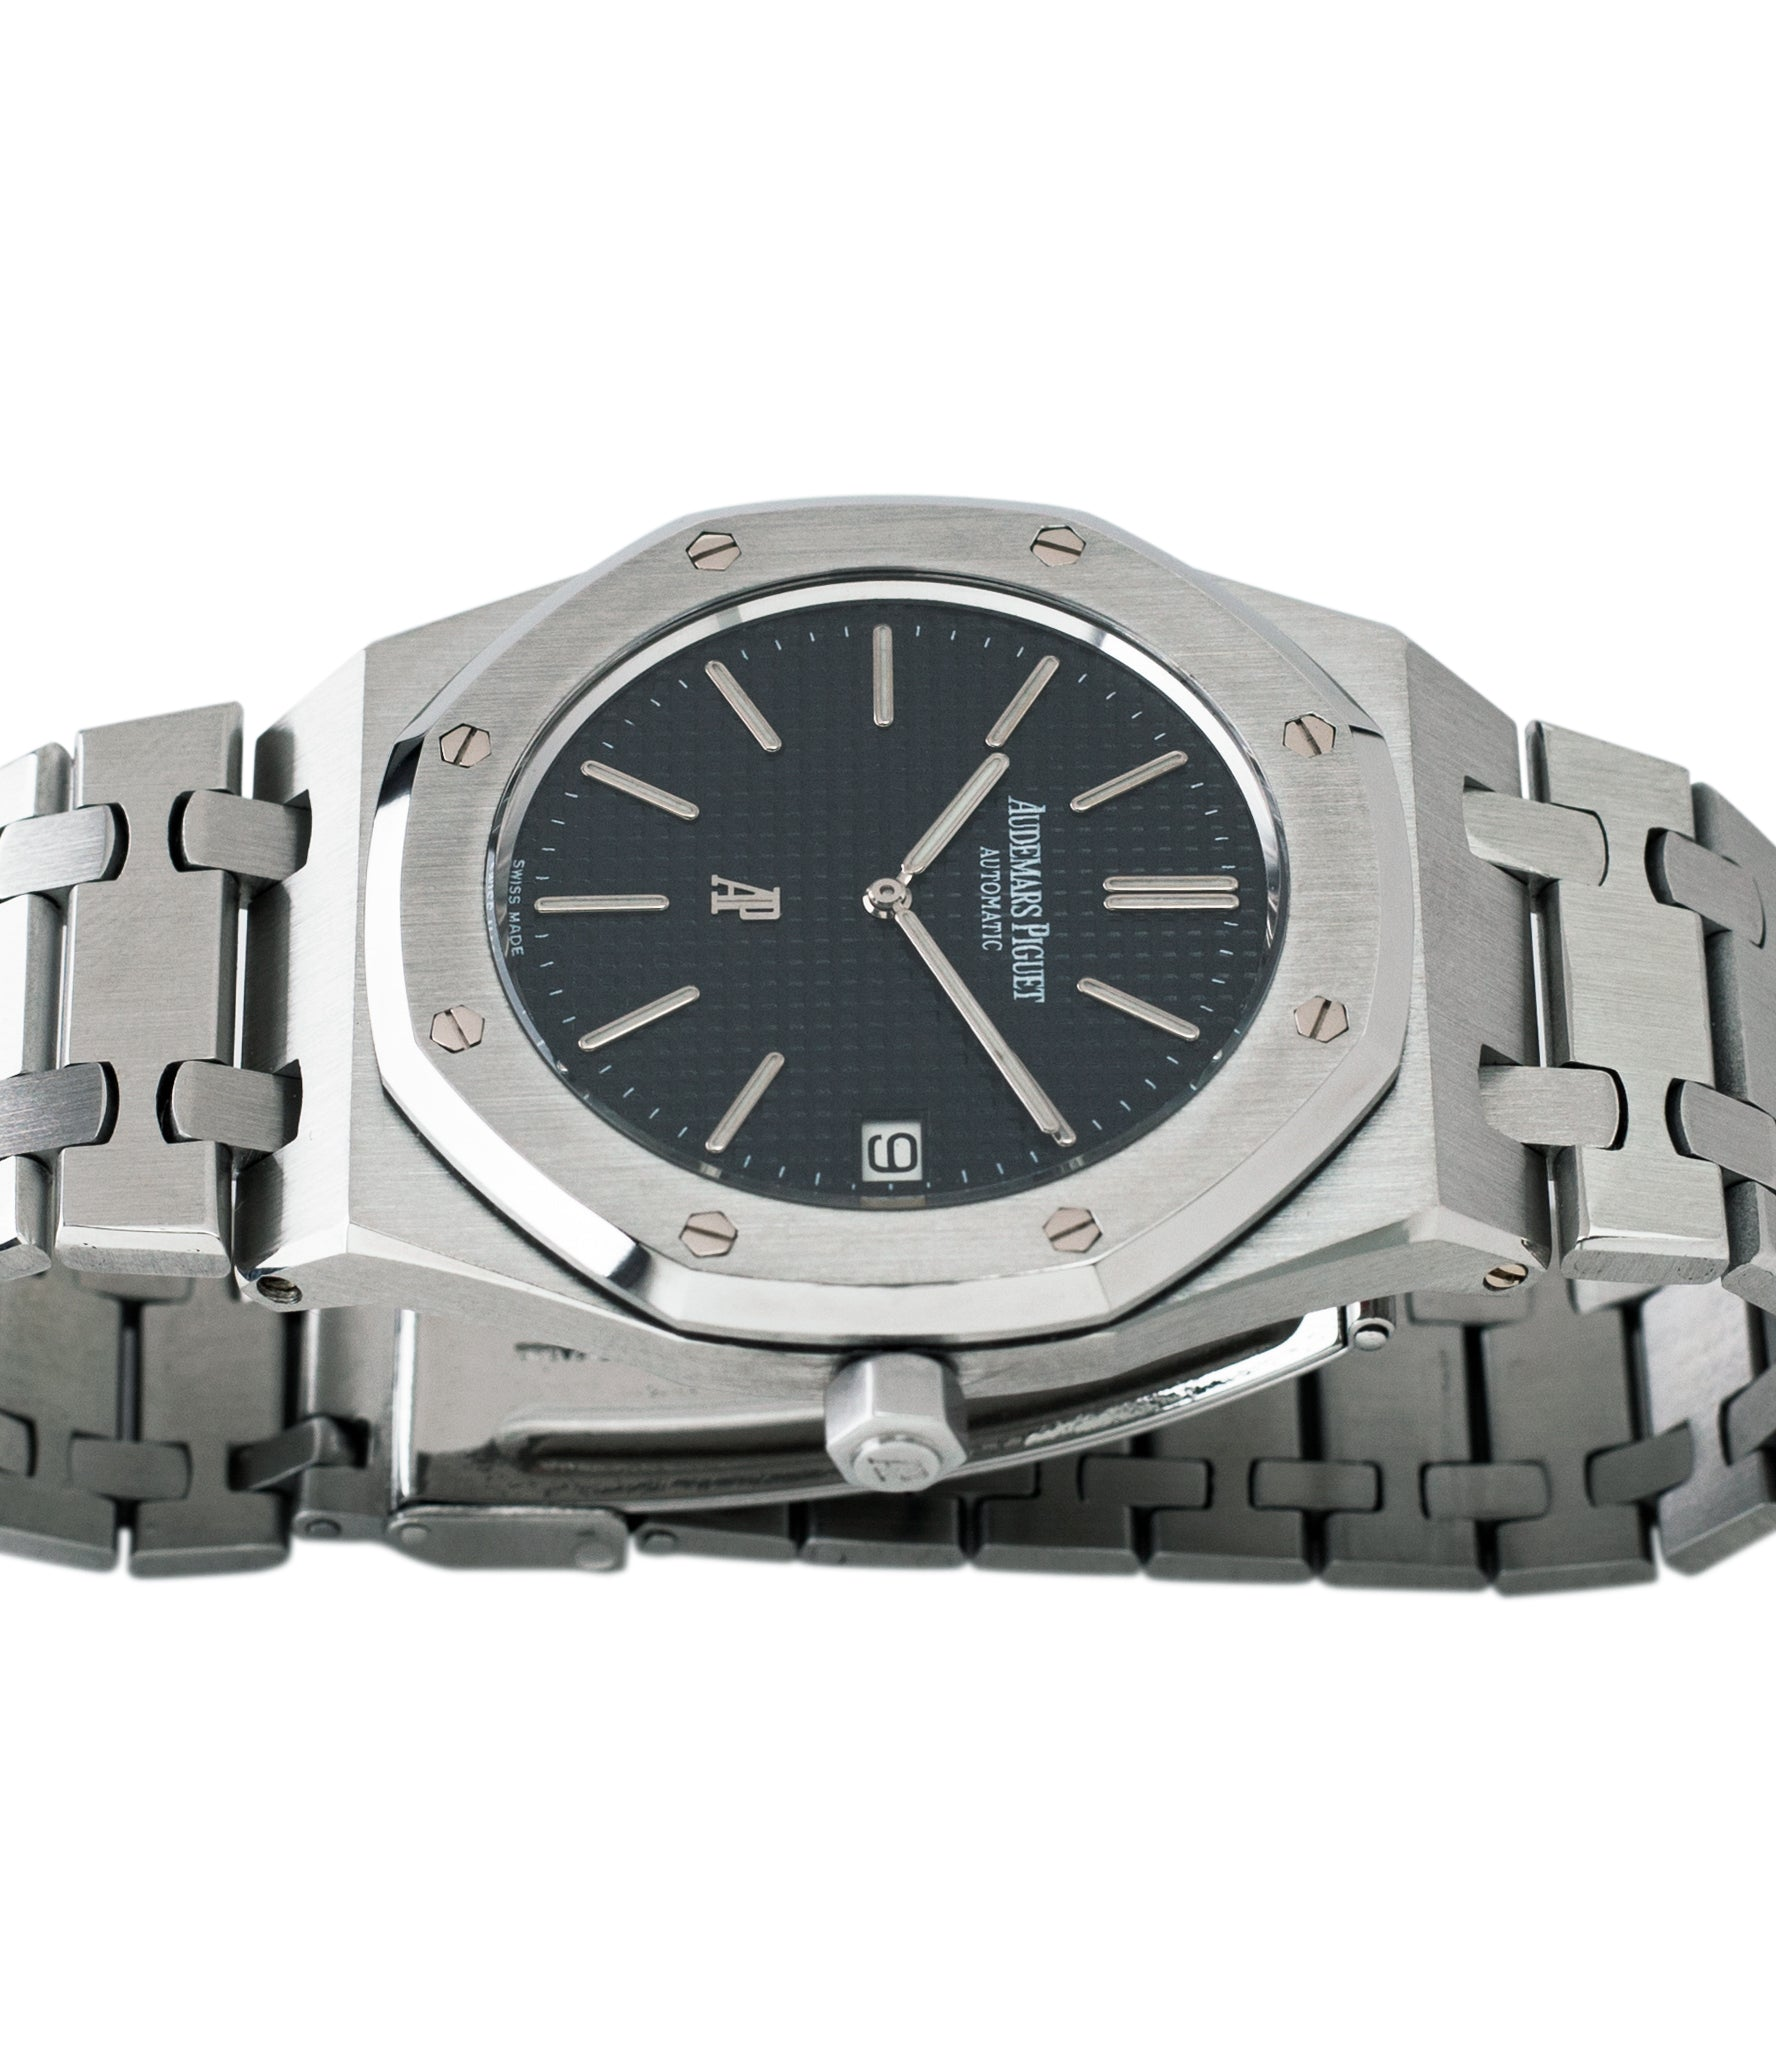 Royal Oak Audemars Piguet 5402 A series steel rare sport watch online at A Collected Man London UK vintage watch specialist